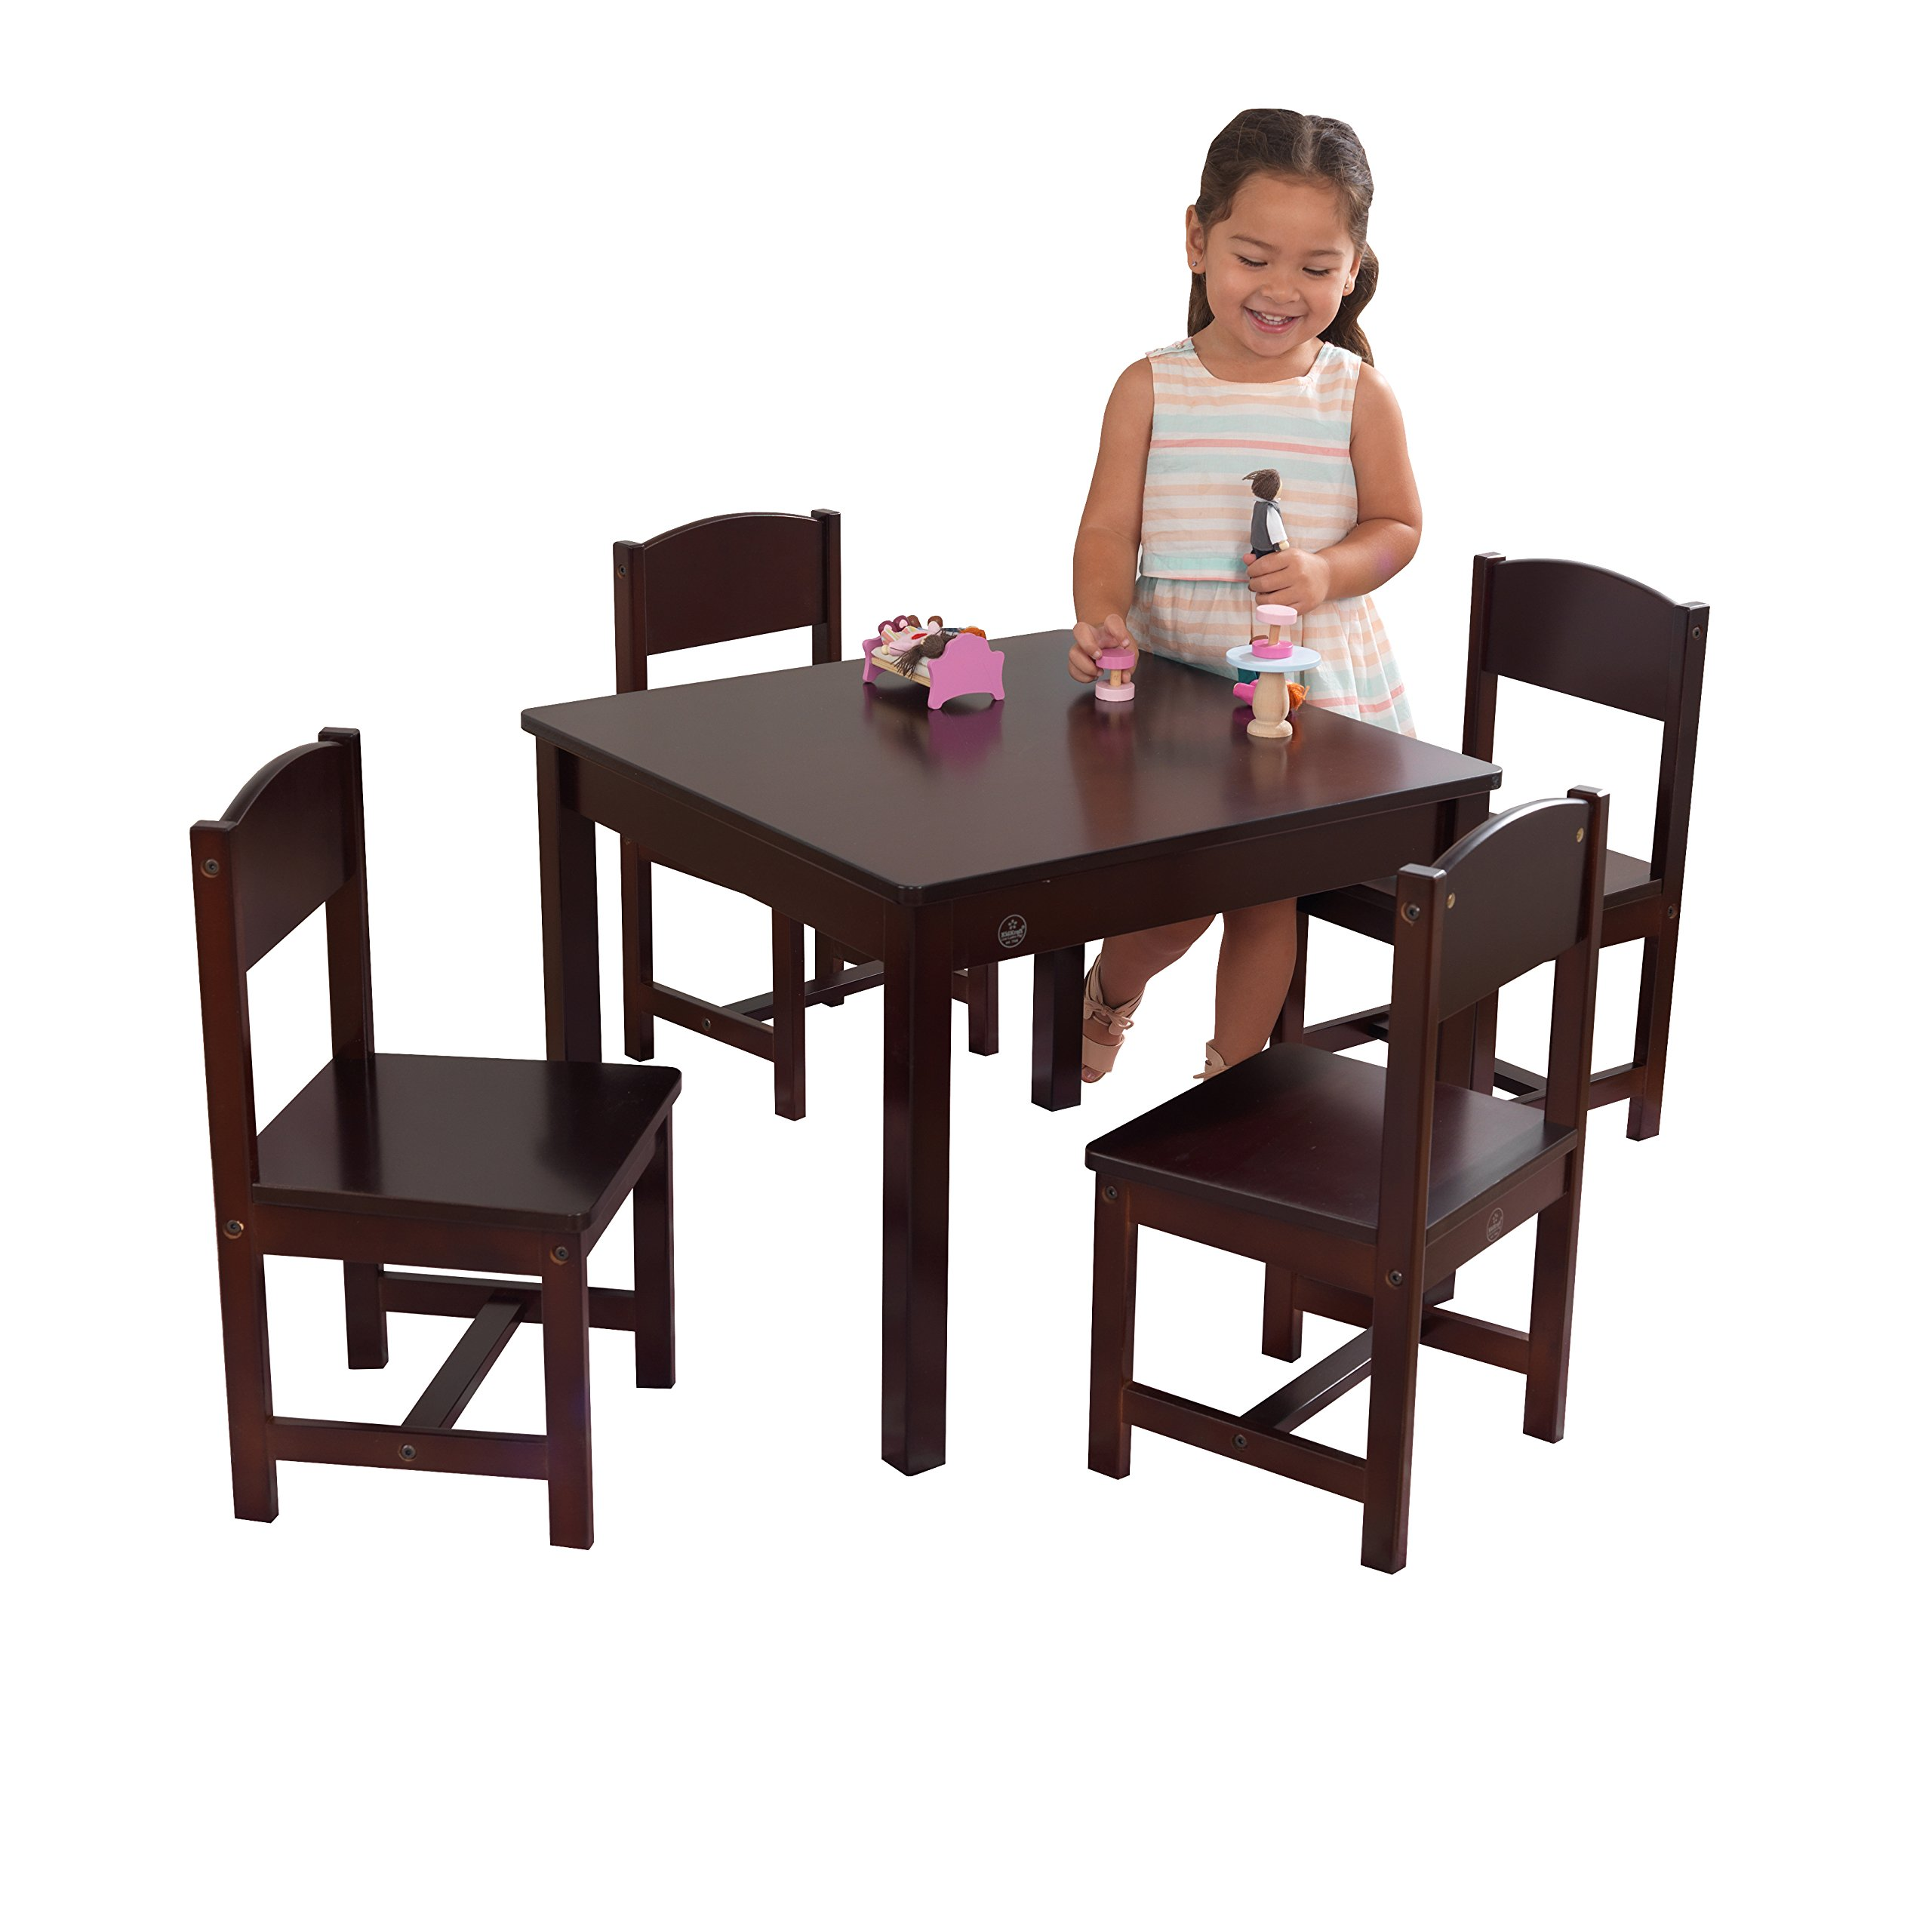 KidKraft Farmhouse Table and Chair Set by KidKraft